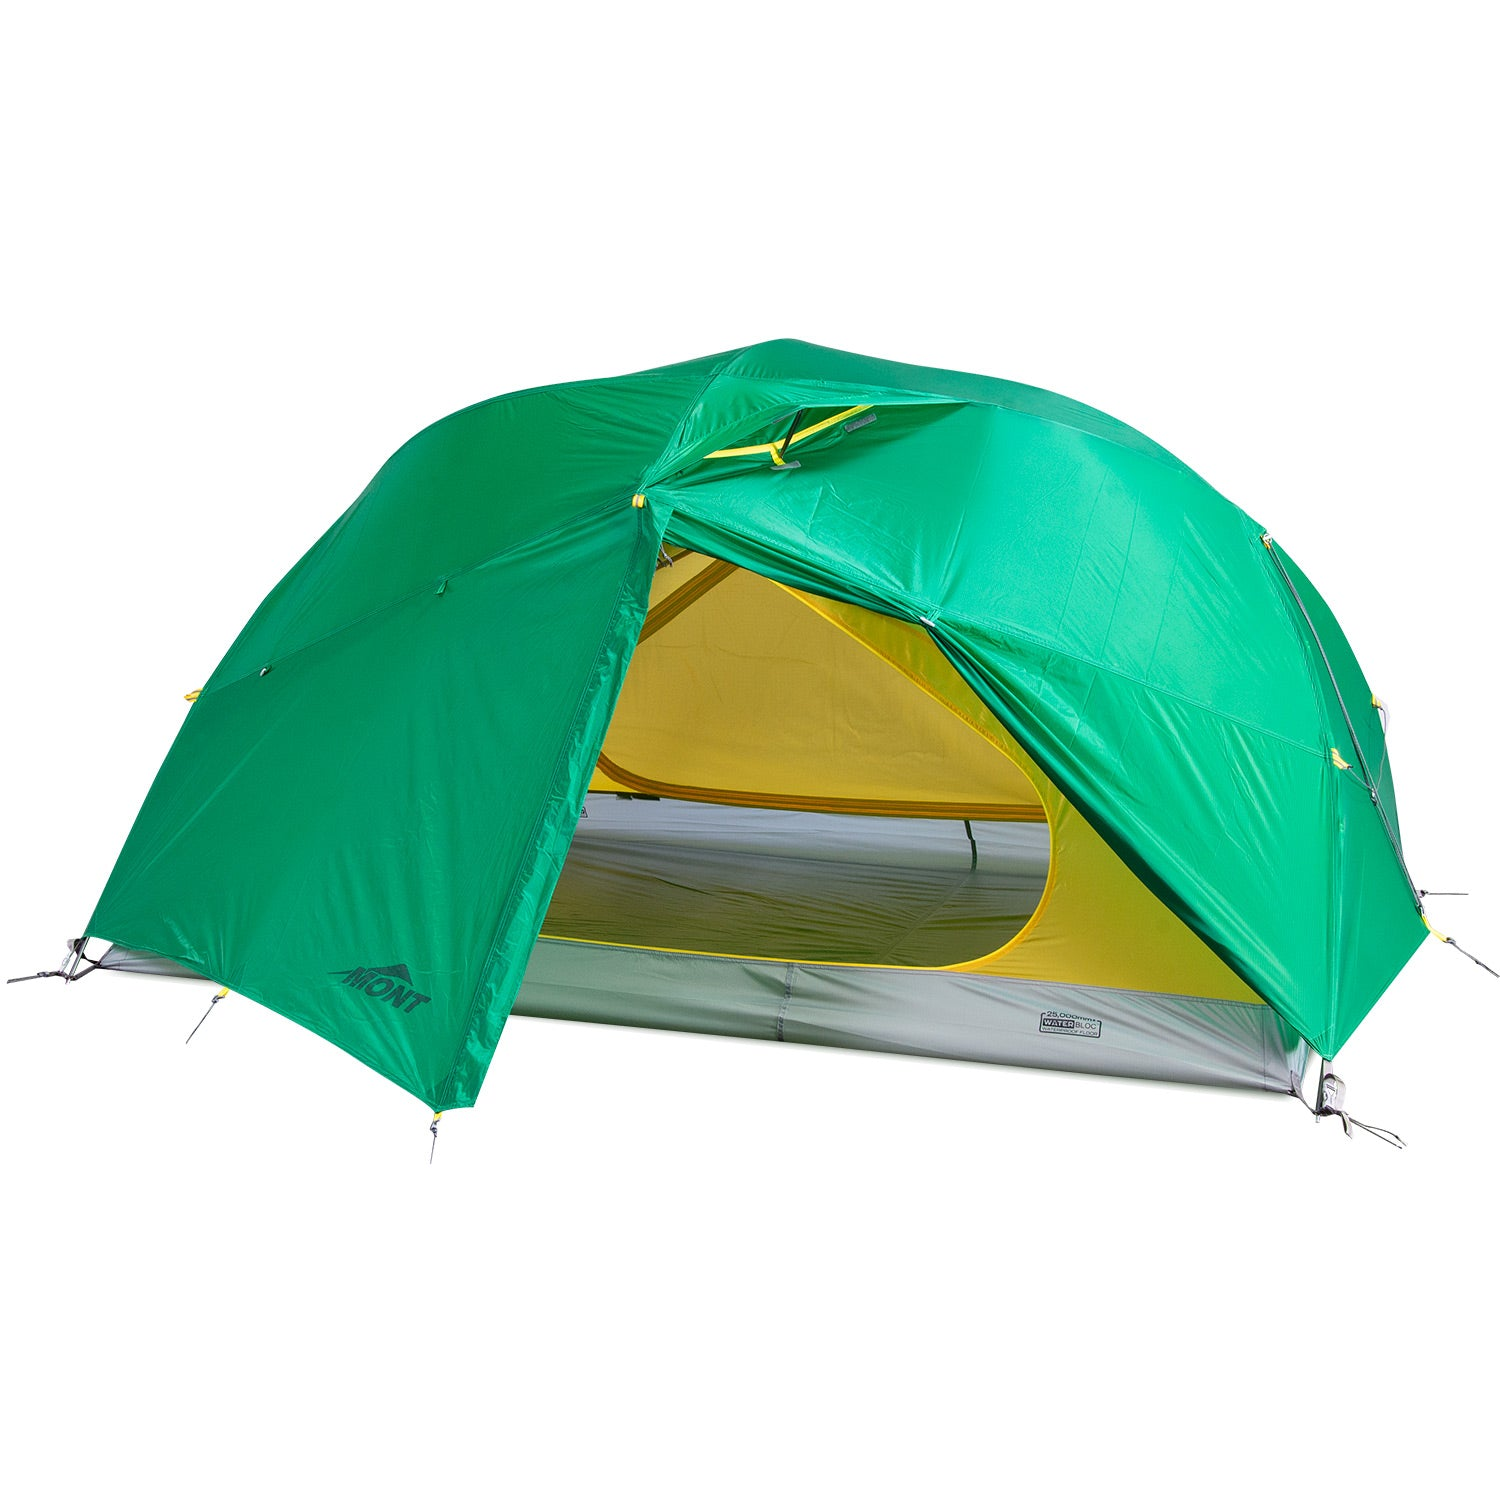 2021 Mont Dragonfly 4 season 2 person tent